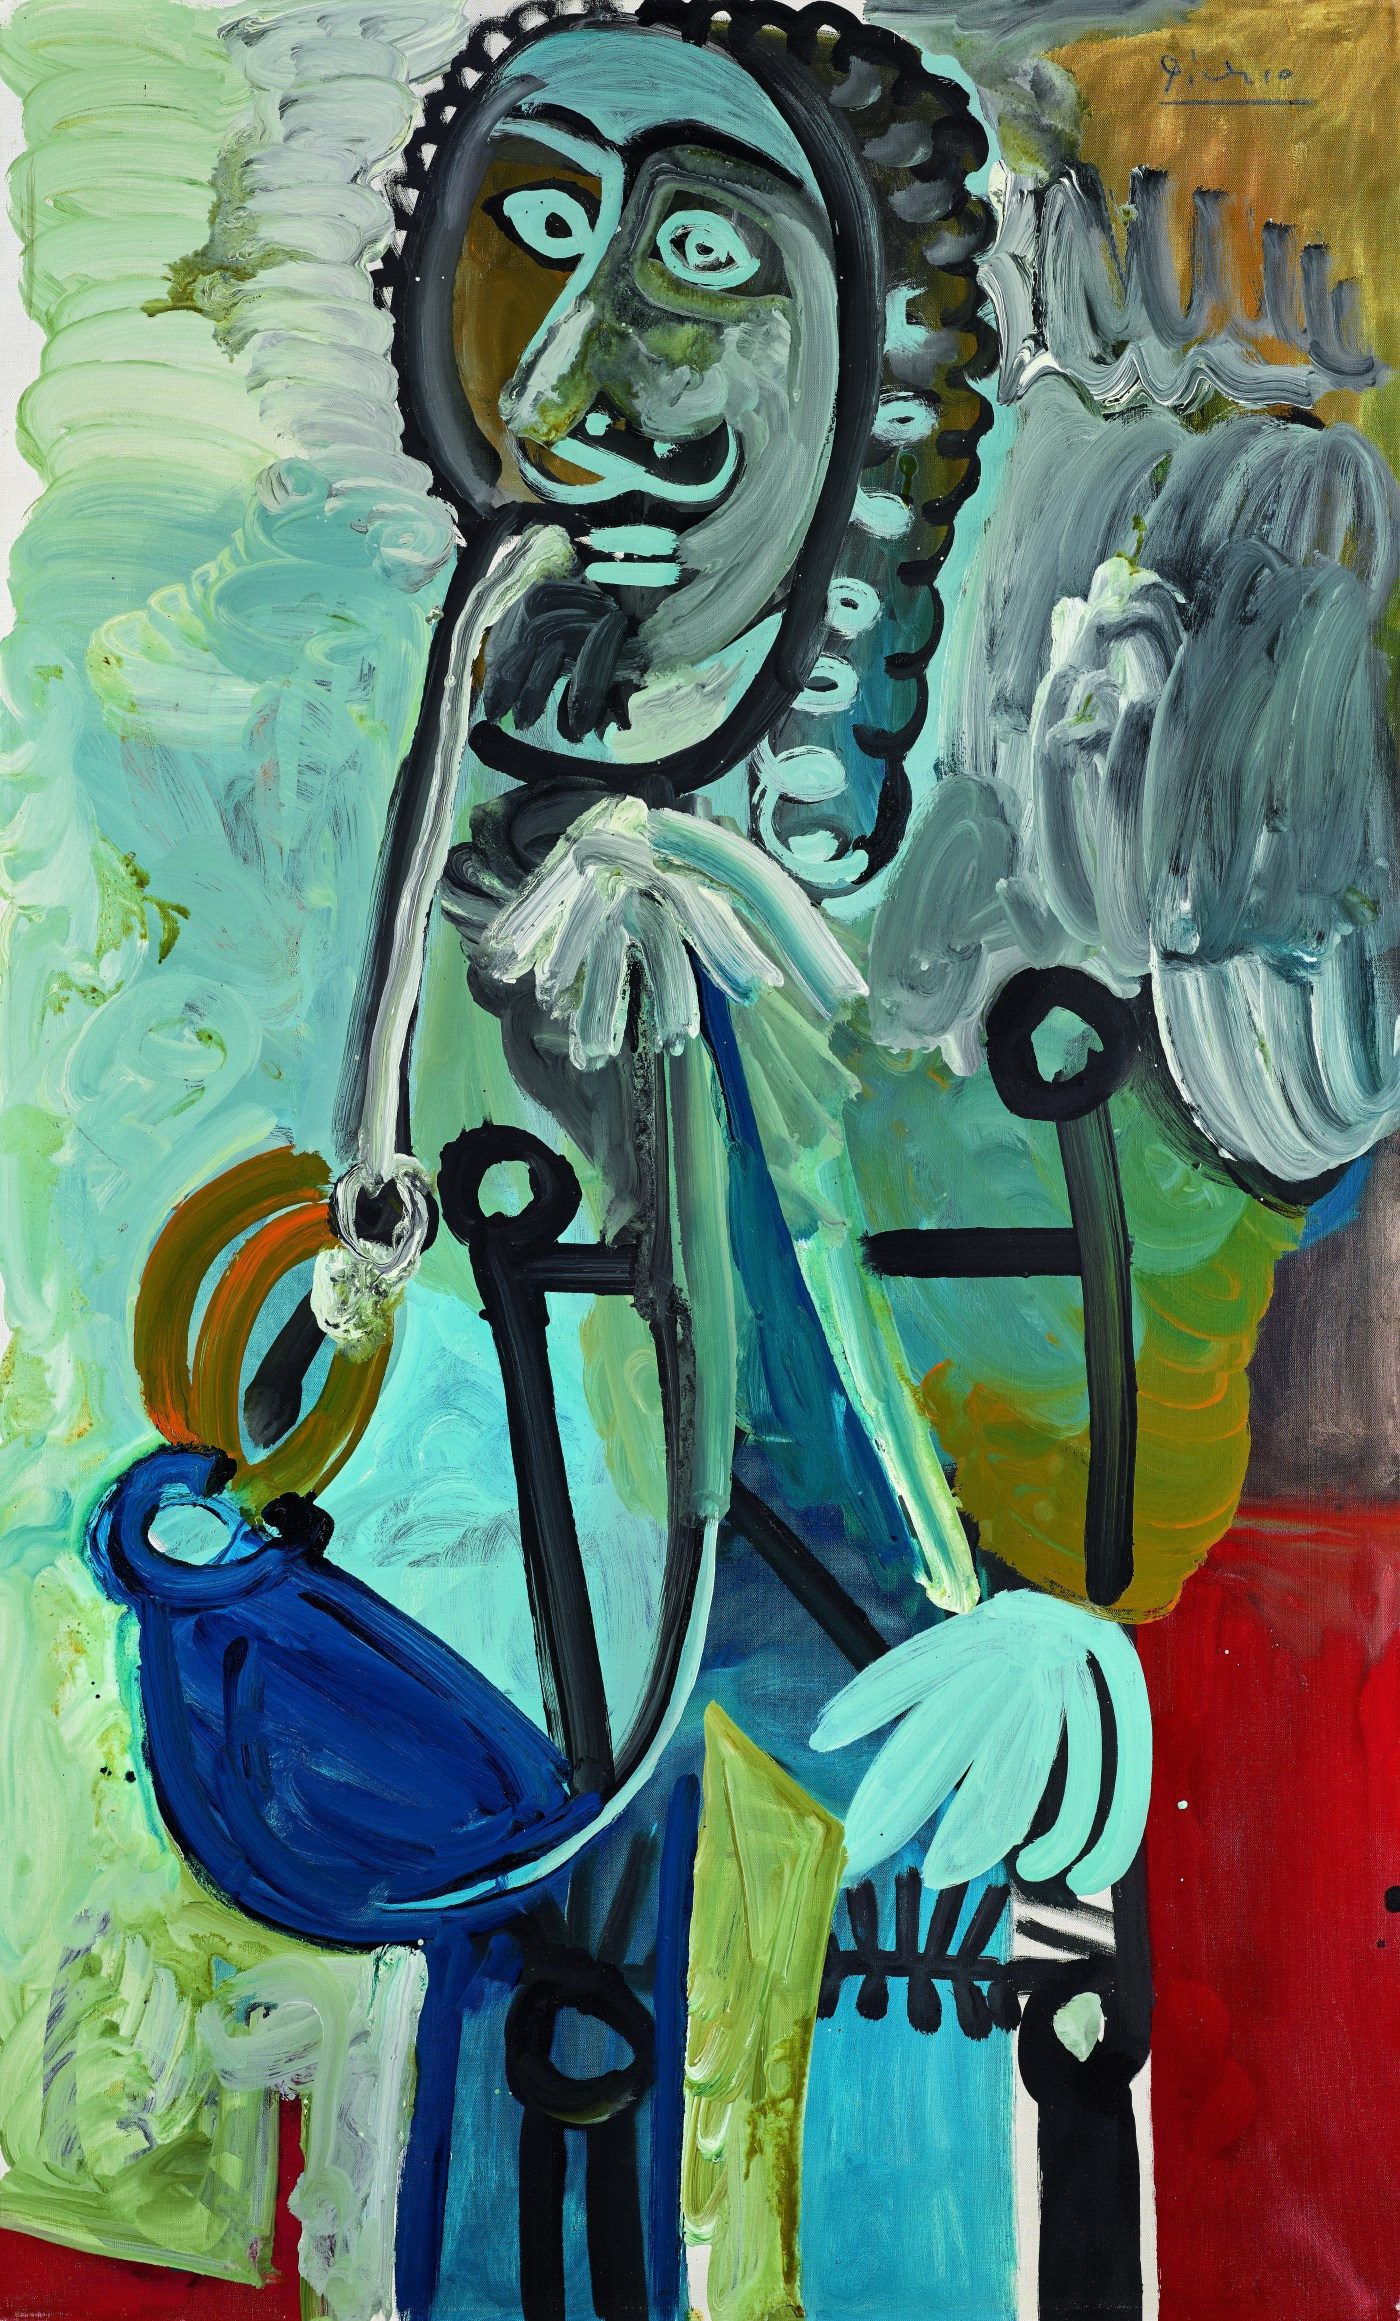 Pablo Picasso, Homme à la pipe, 1968, oil on canvas (est. £5,500,000-7,500,000)